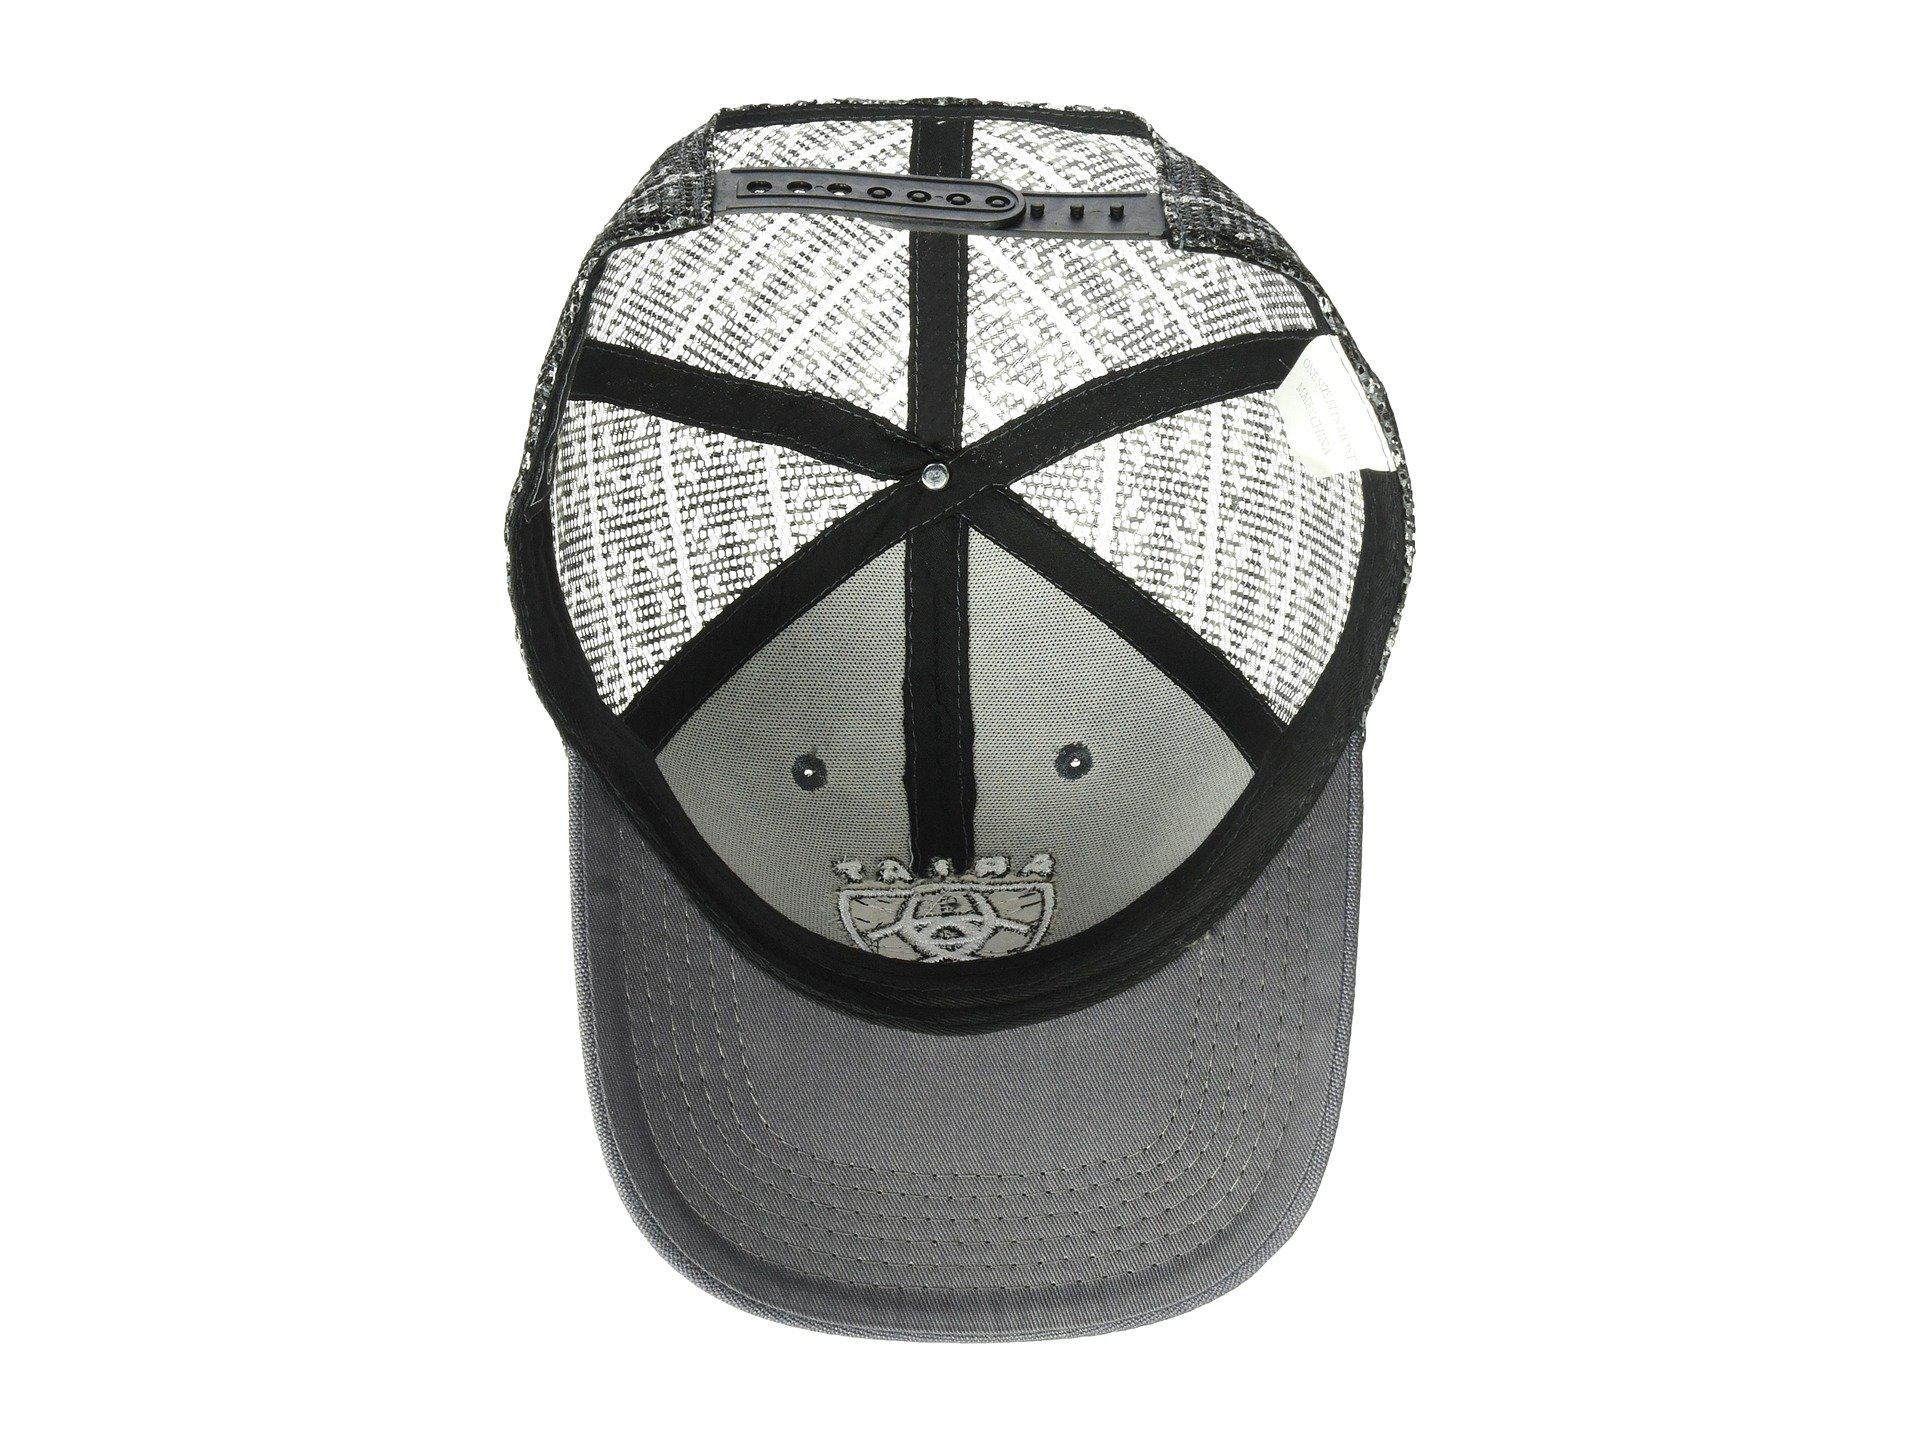 Lyst - Ariat Logo Shield Flexfit Cap (grey) Caps in Gray for Men a3415ee29595